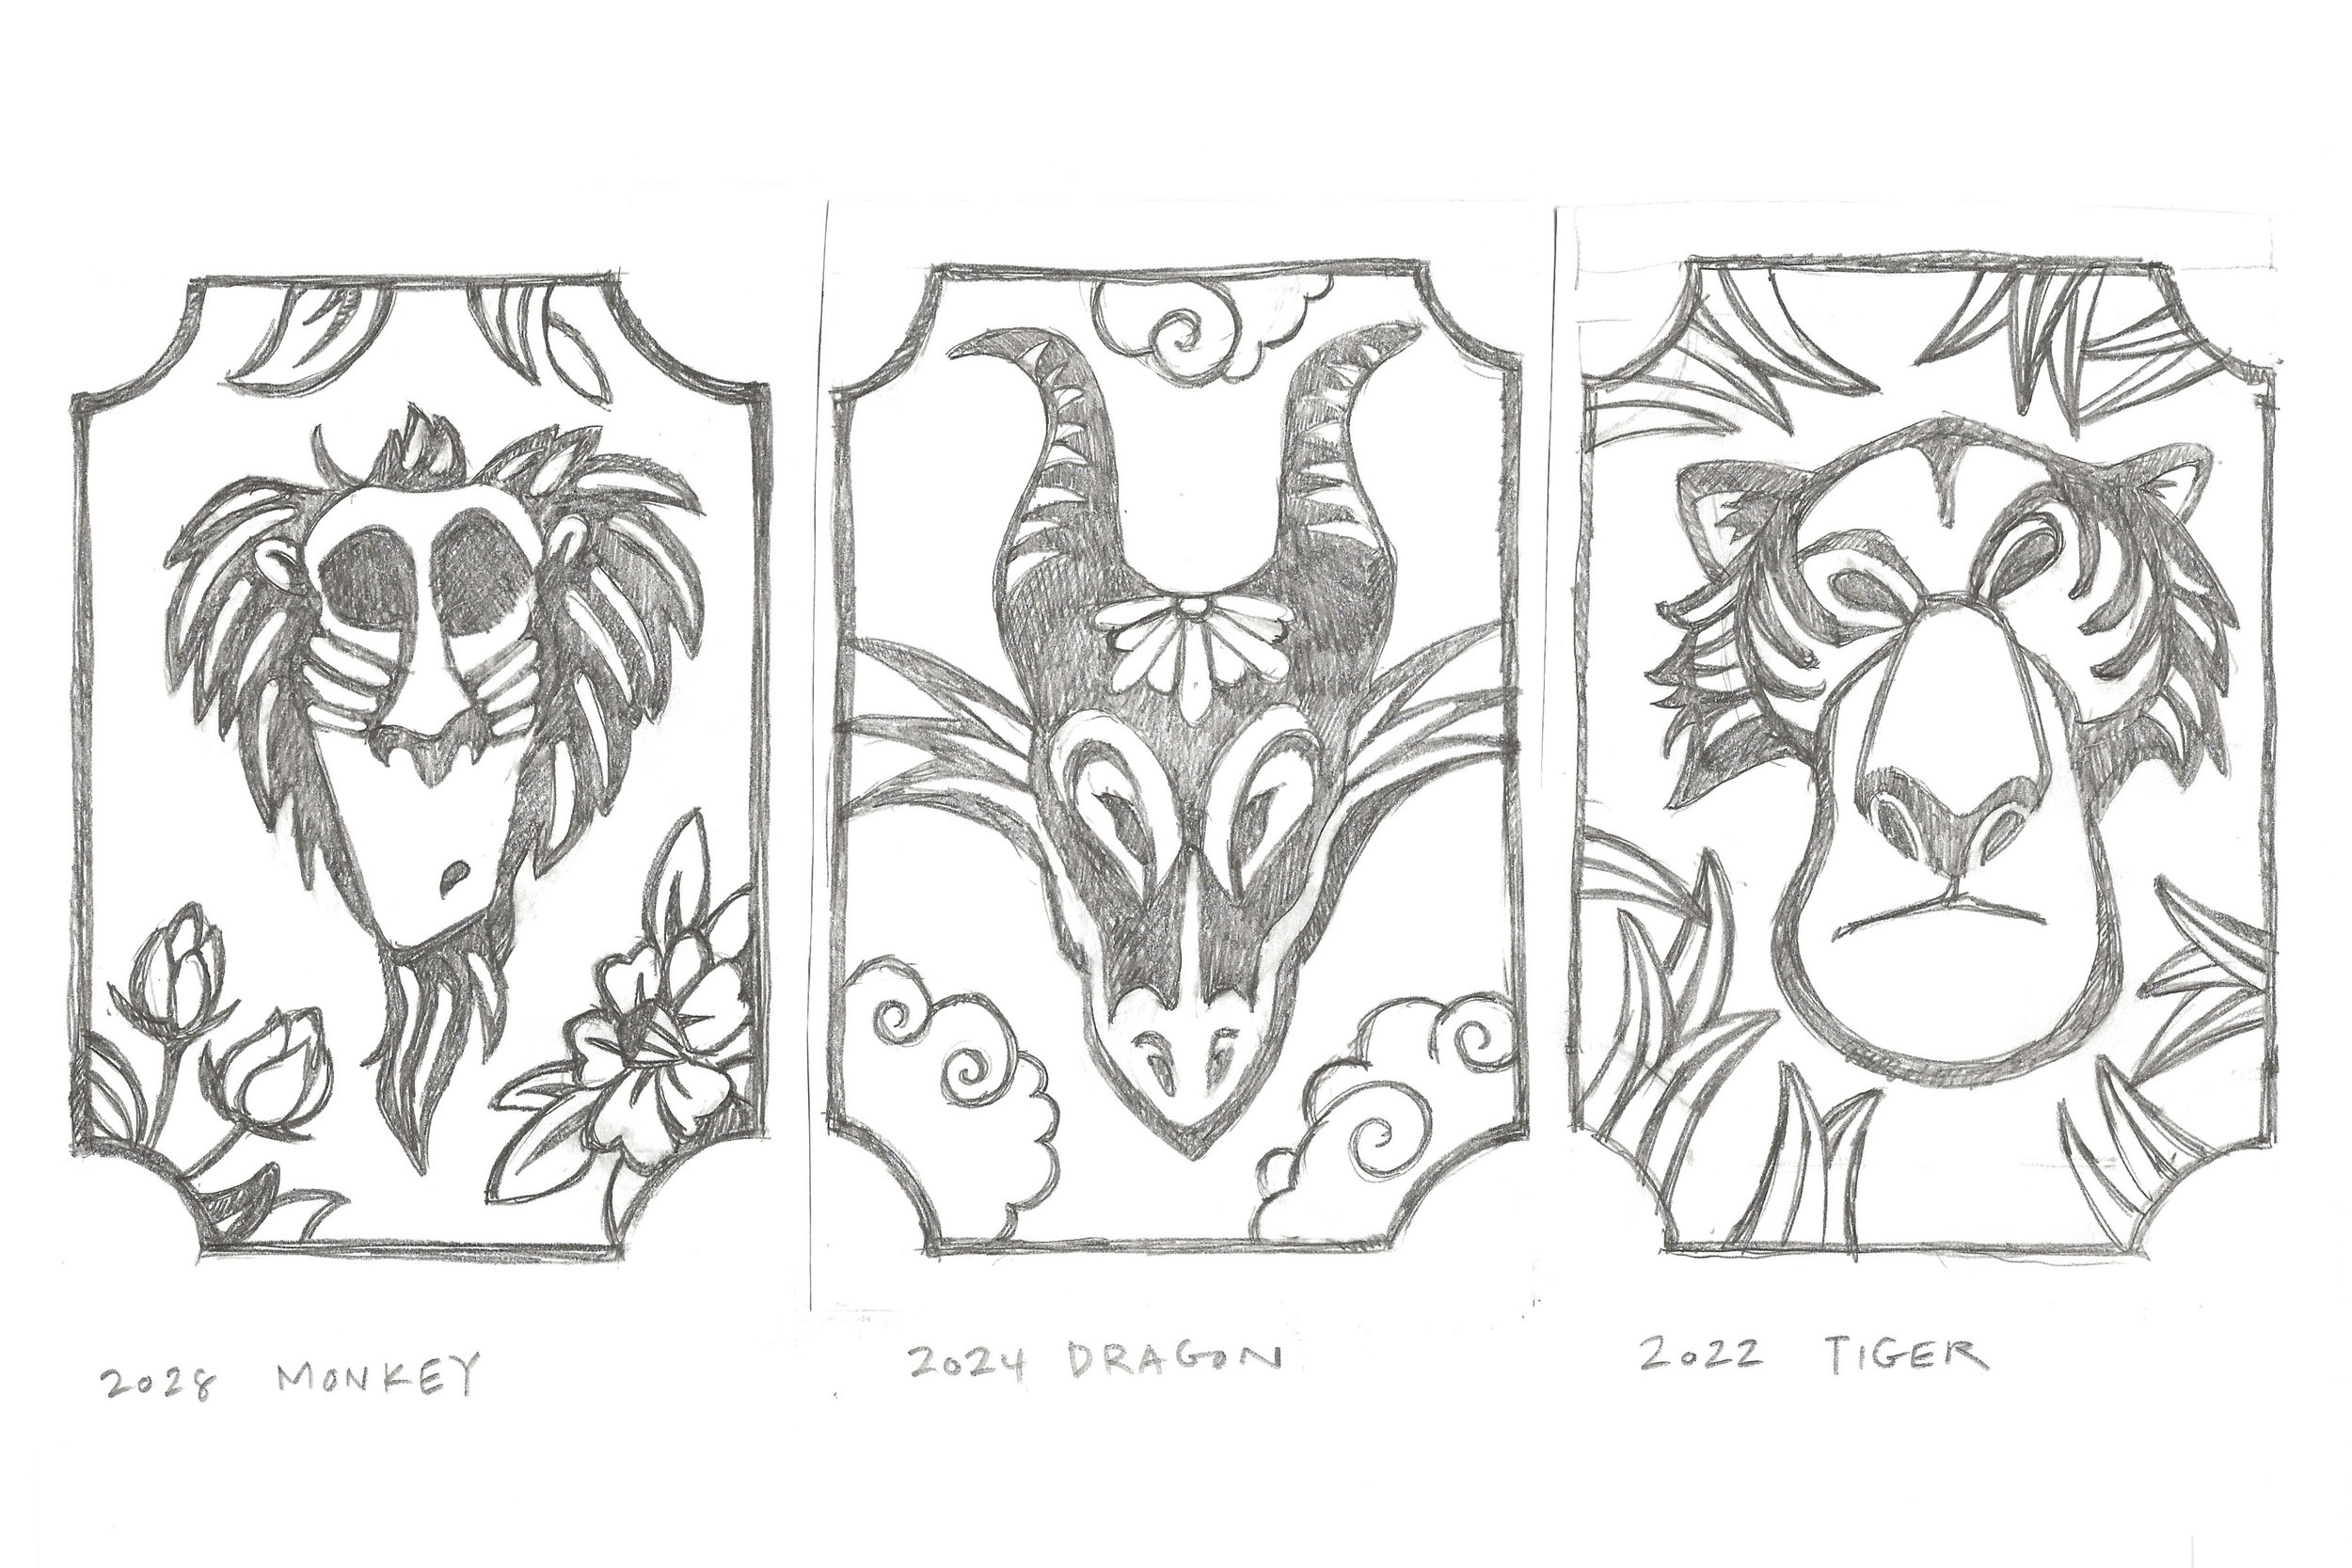 Detailed Pencil Sketches - I did research on single-color Chinese paper cut designs and developed three of the thumbnail sketches into rough designs.